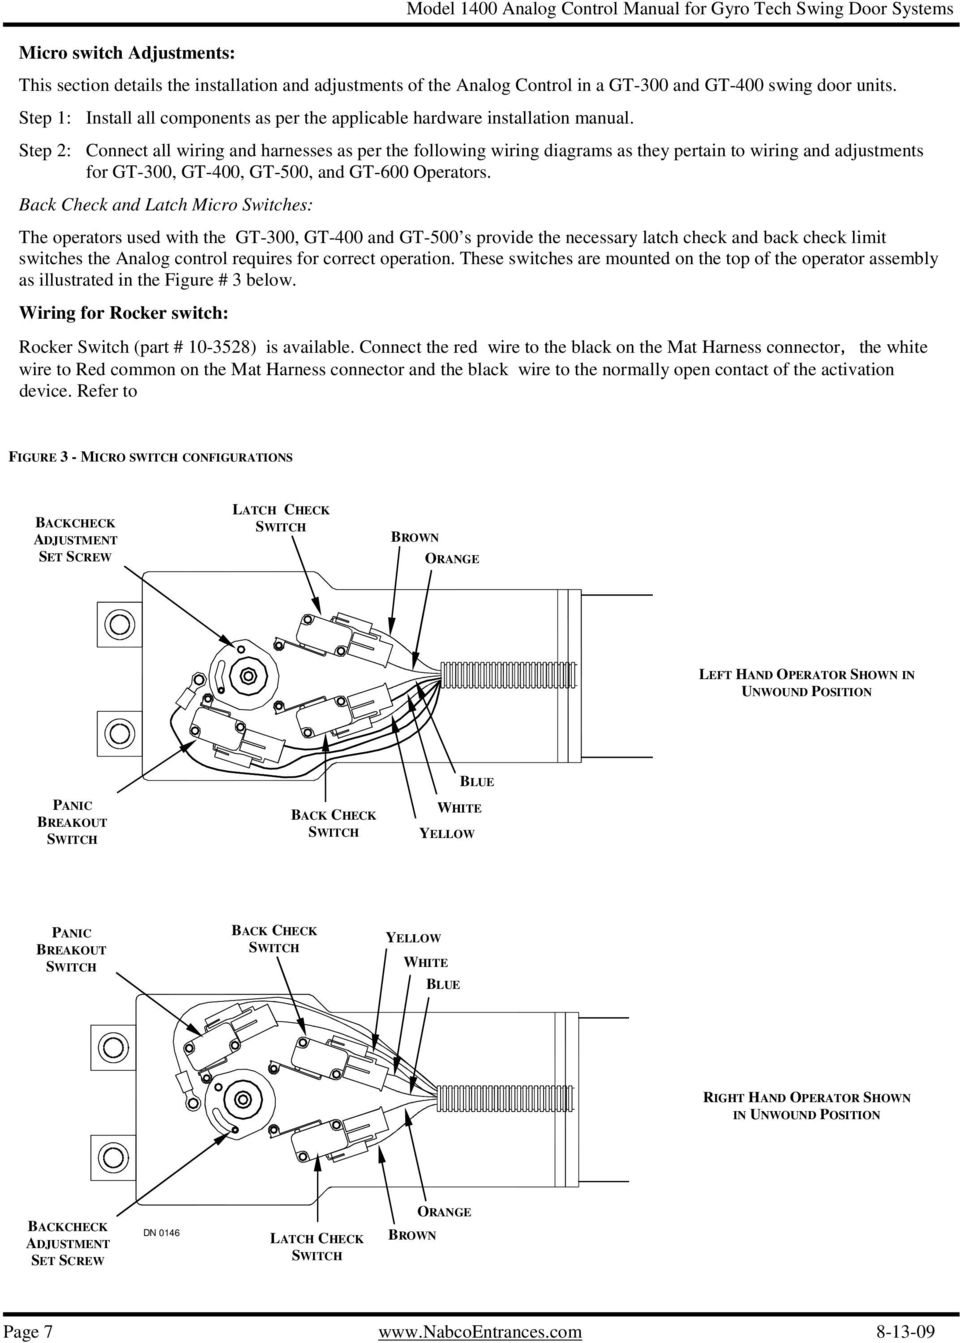 Analog Control Wiring Adjustment Manual For Gyro Tech Swing Door Micro Switch Diagram Step 2 Connect All And Harnesses As Per The Following Diagrams They